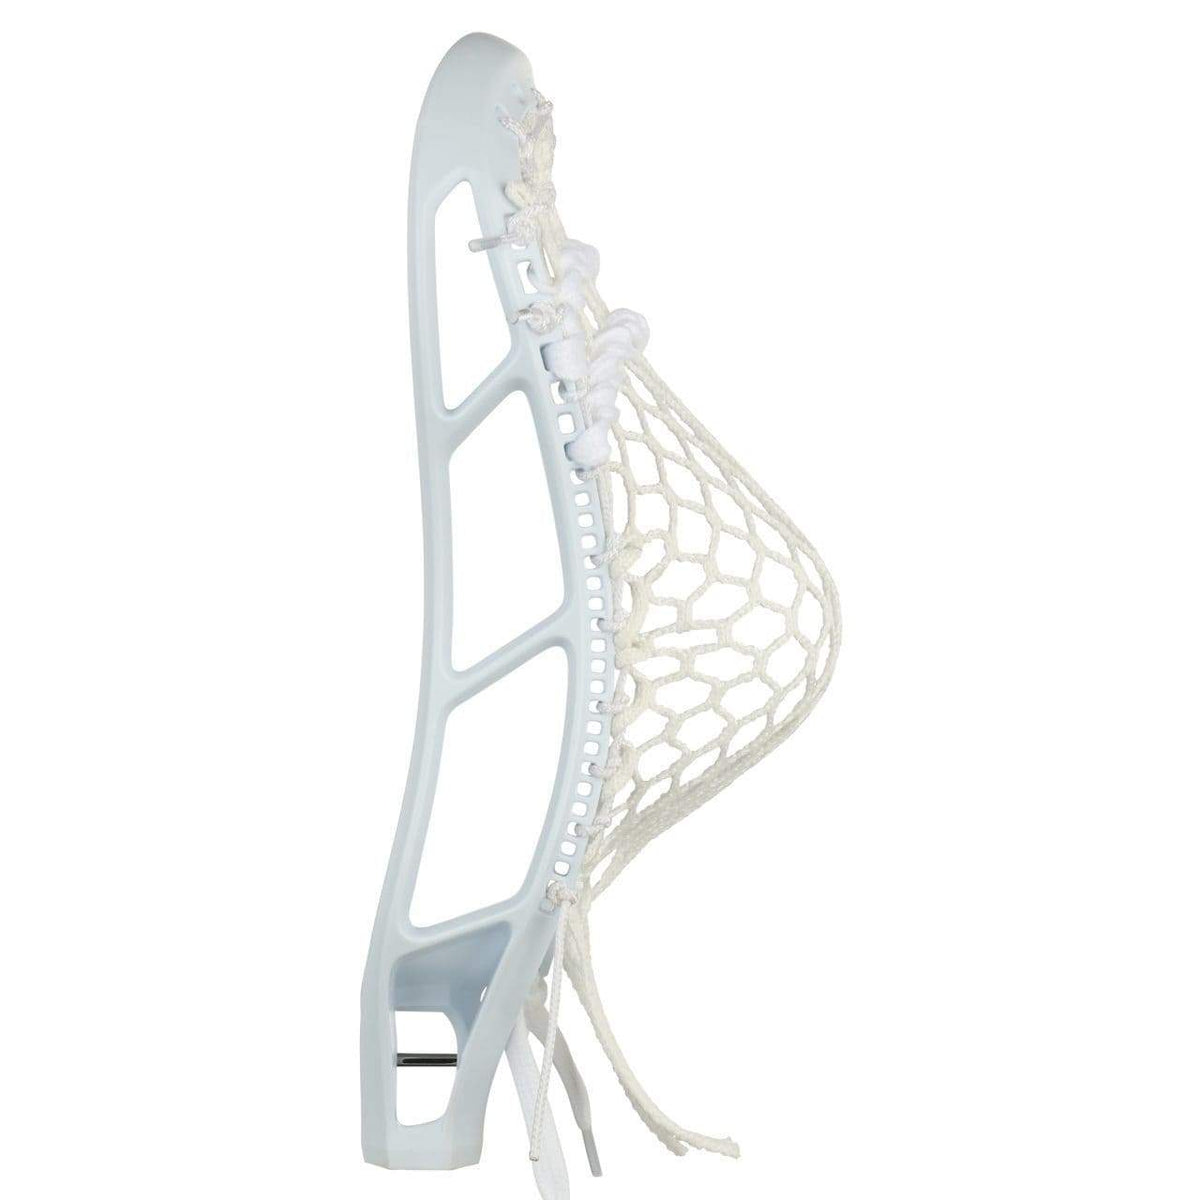 StringKing Legend Senior Factory Strung Men's Lacrosse Head